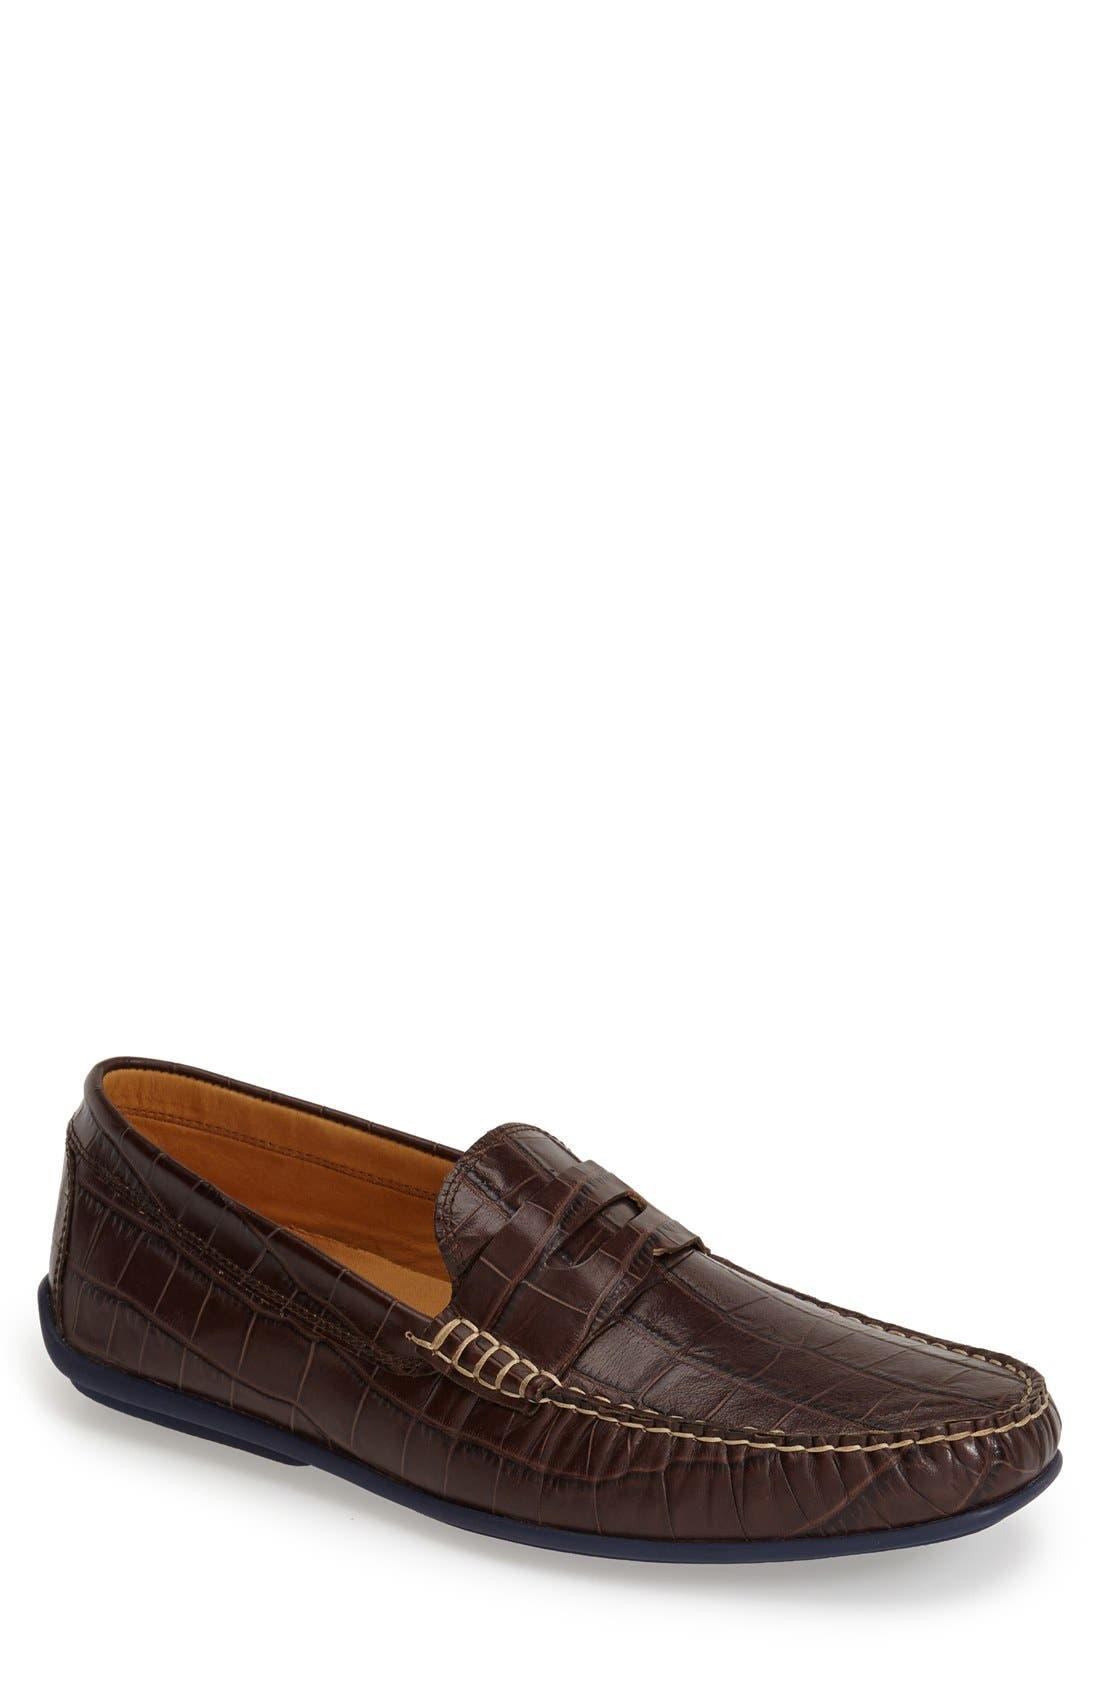 'Waverly' Leather Penny Loafer,                             Main thumbnail 1, color,                             BROWN